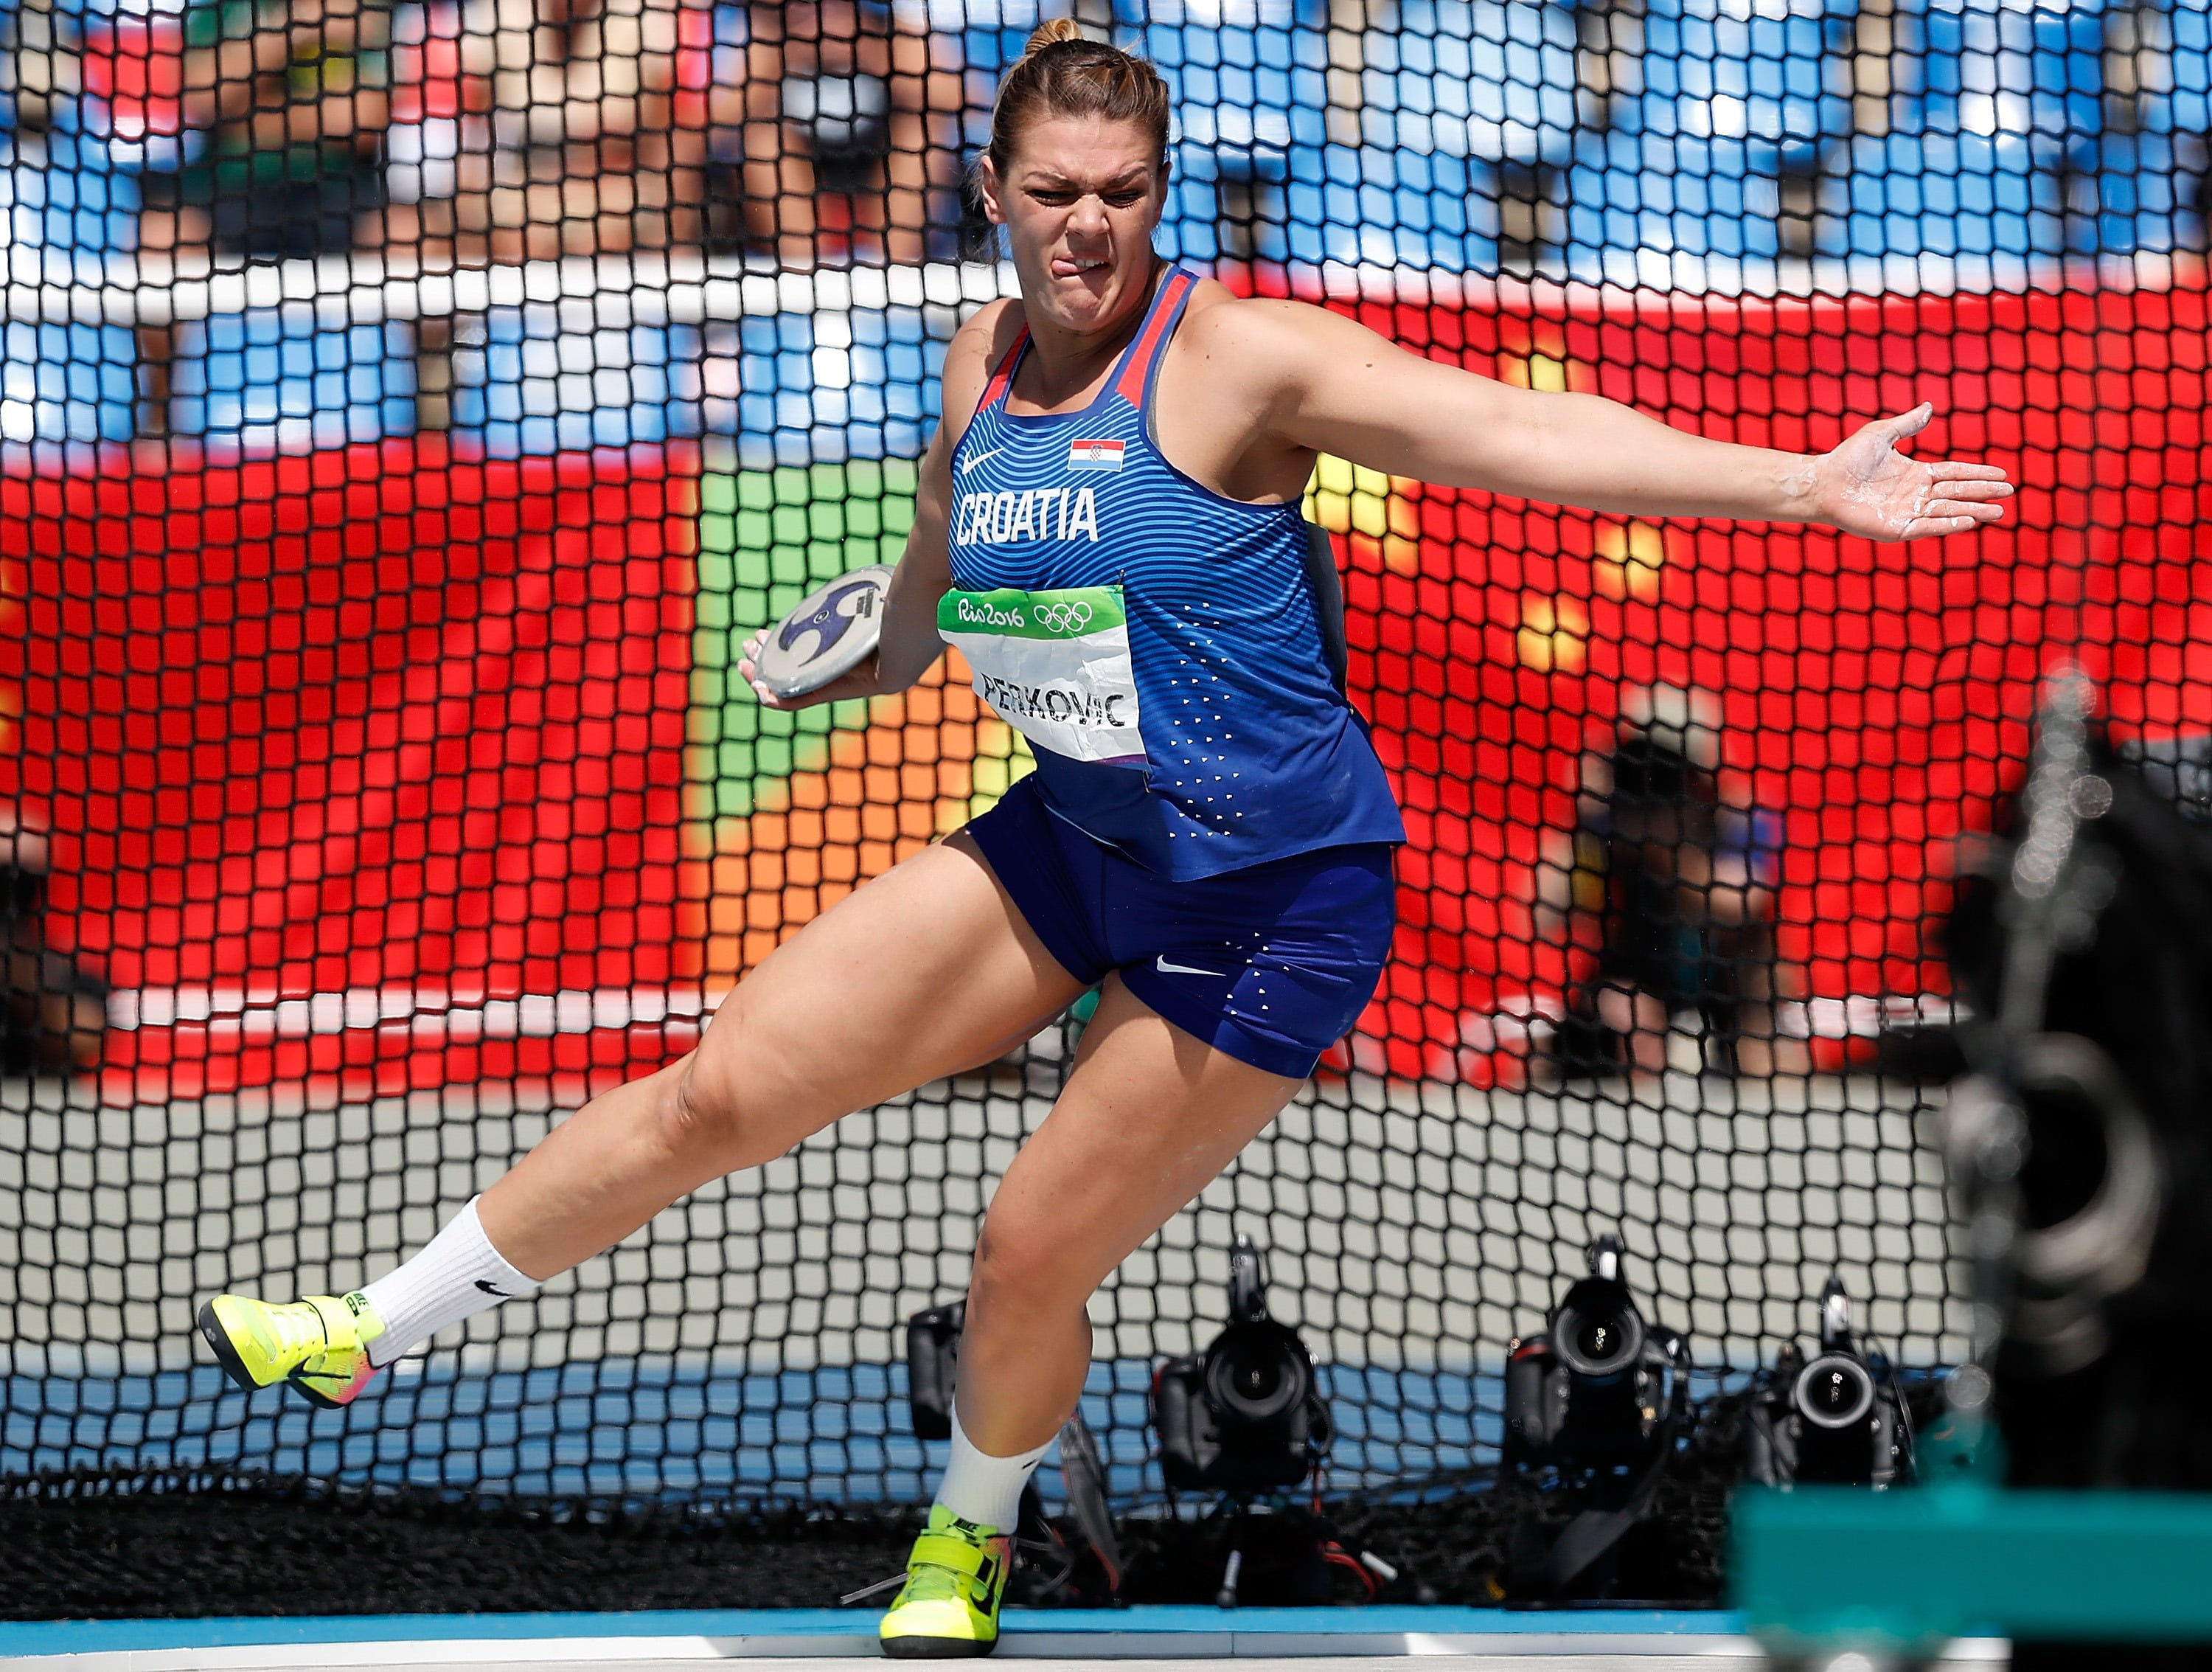 RIO DE JANEIRO, Aug. 16, 2016 Sandra Perkovic of Croatia competes during the final of women's discus throw at the 2016 Rio Olympic Games in Rio de Janeiro, Brazil, on Aug. 16, 2016. Sandra Perkovic won the gold medal. dh) (Credit Image: Wang Lili/Xinhua via ZUMA Wire) IGRZYSKA OLIMPIJSKIE W BRAZYLII BRAZYLIA FOT.ZUMA/NEWSPIX.PL POLAND ONLY!!! --- Newspix.pl *** Local Caption *** www.newspix.pl mail us: info@newspix.pl call us: 0048 022 23 22 222 --- Polish Picture Agency by Ringier Axel Springer Poland